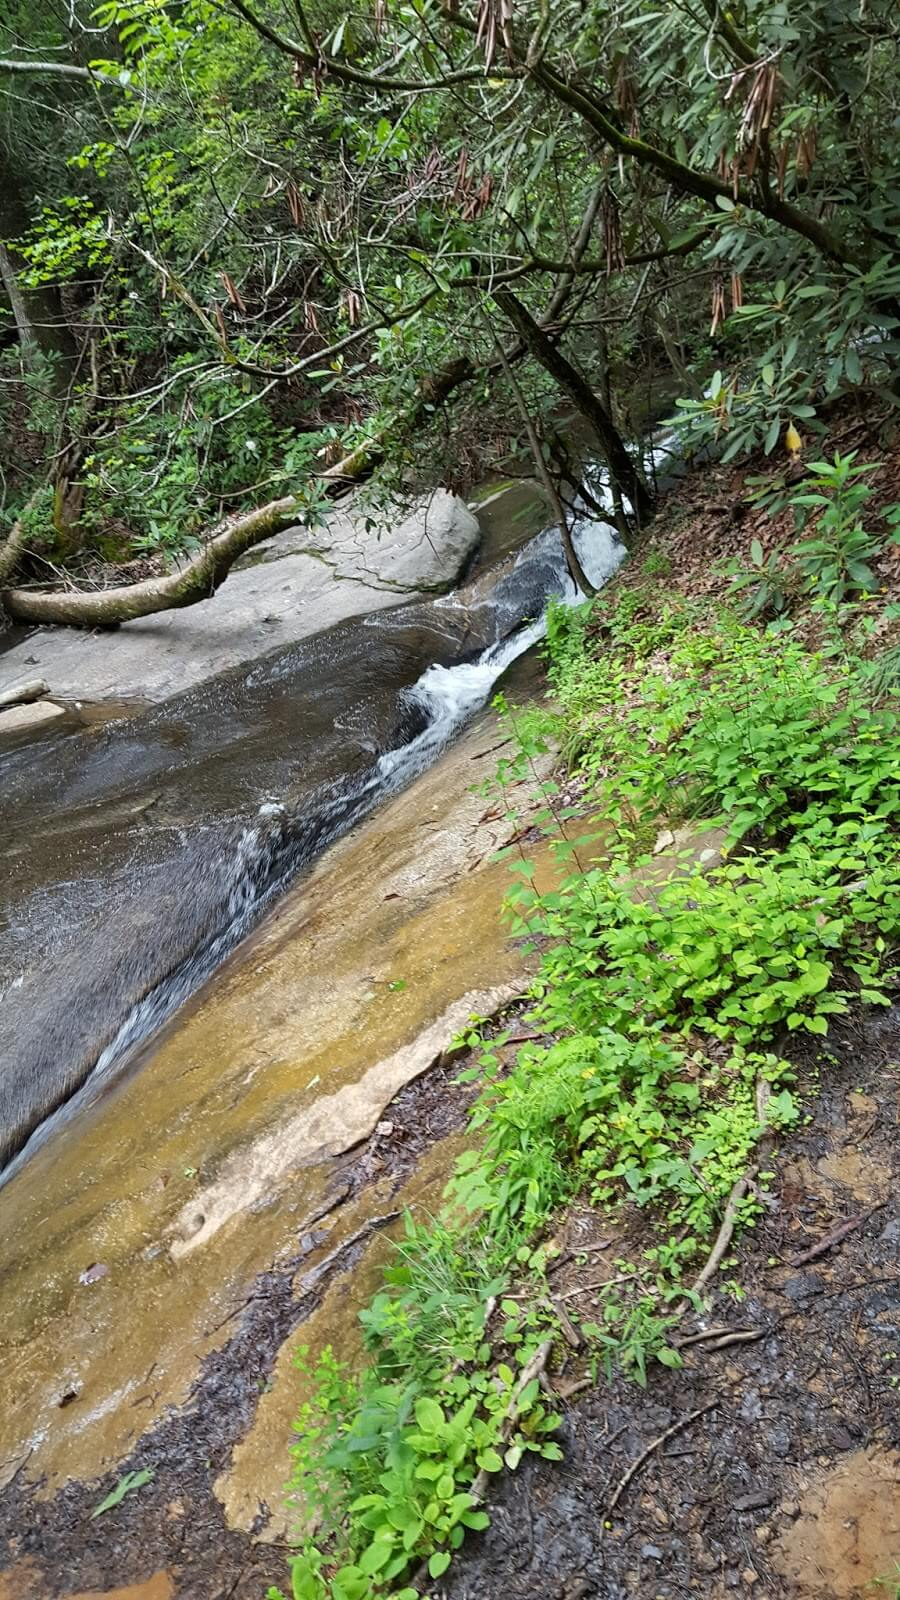 View of water flowing over rocks